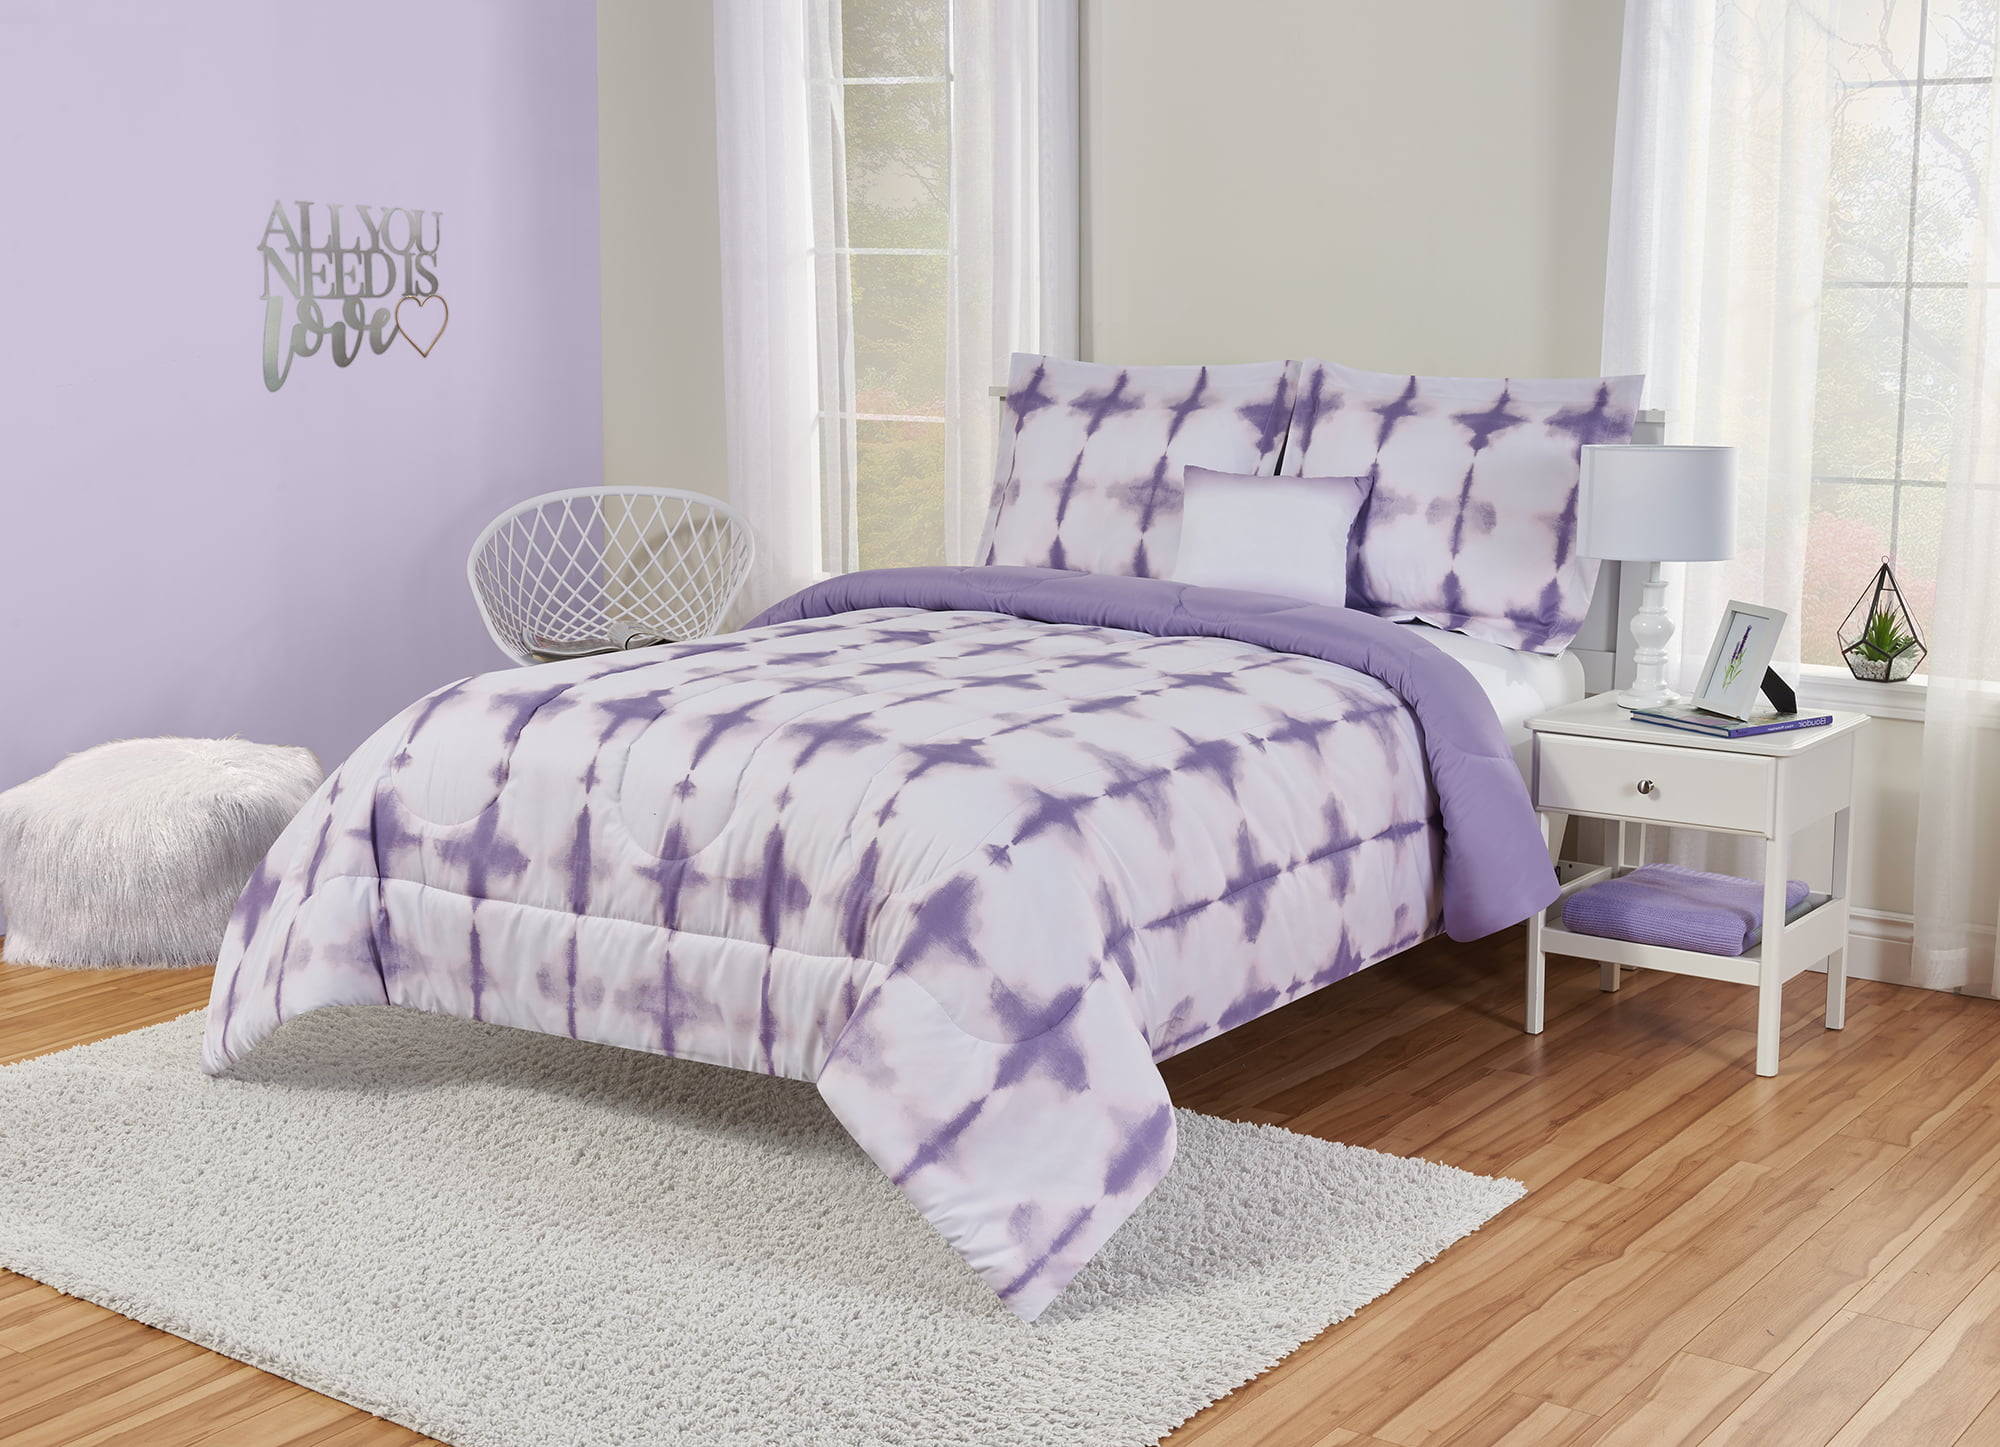 Better Homes And Gardens Kids Lavender Tie Dye Comforter Set Walmart Com Walmart Com